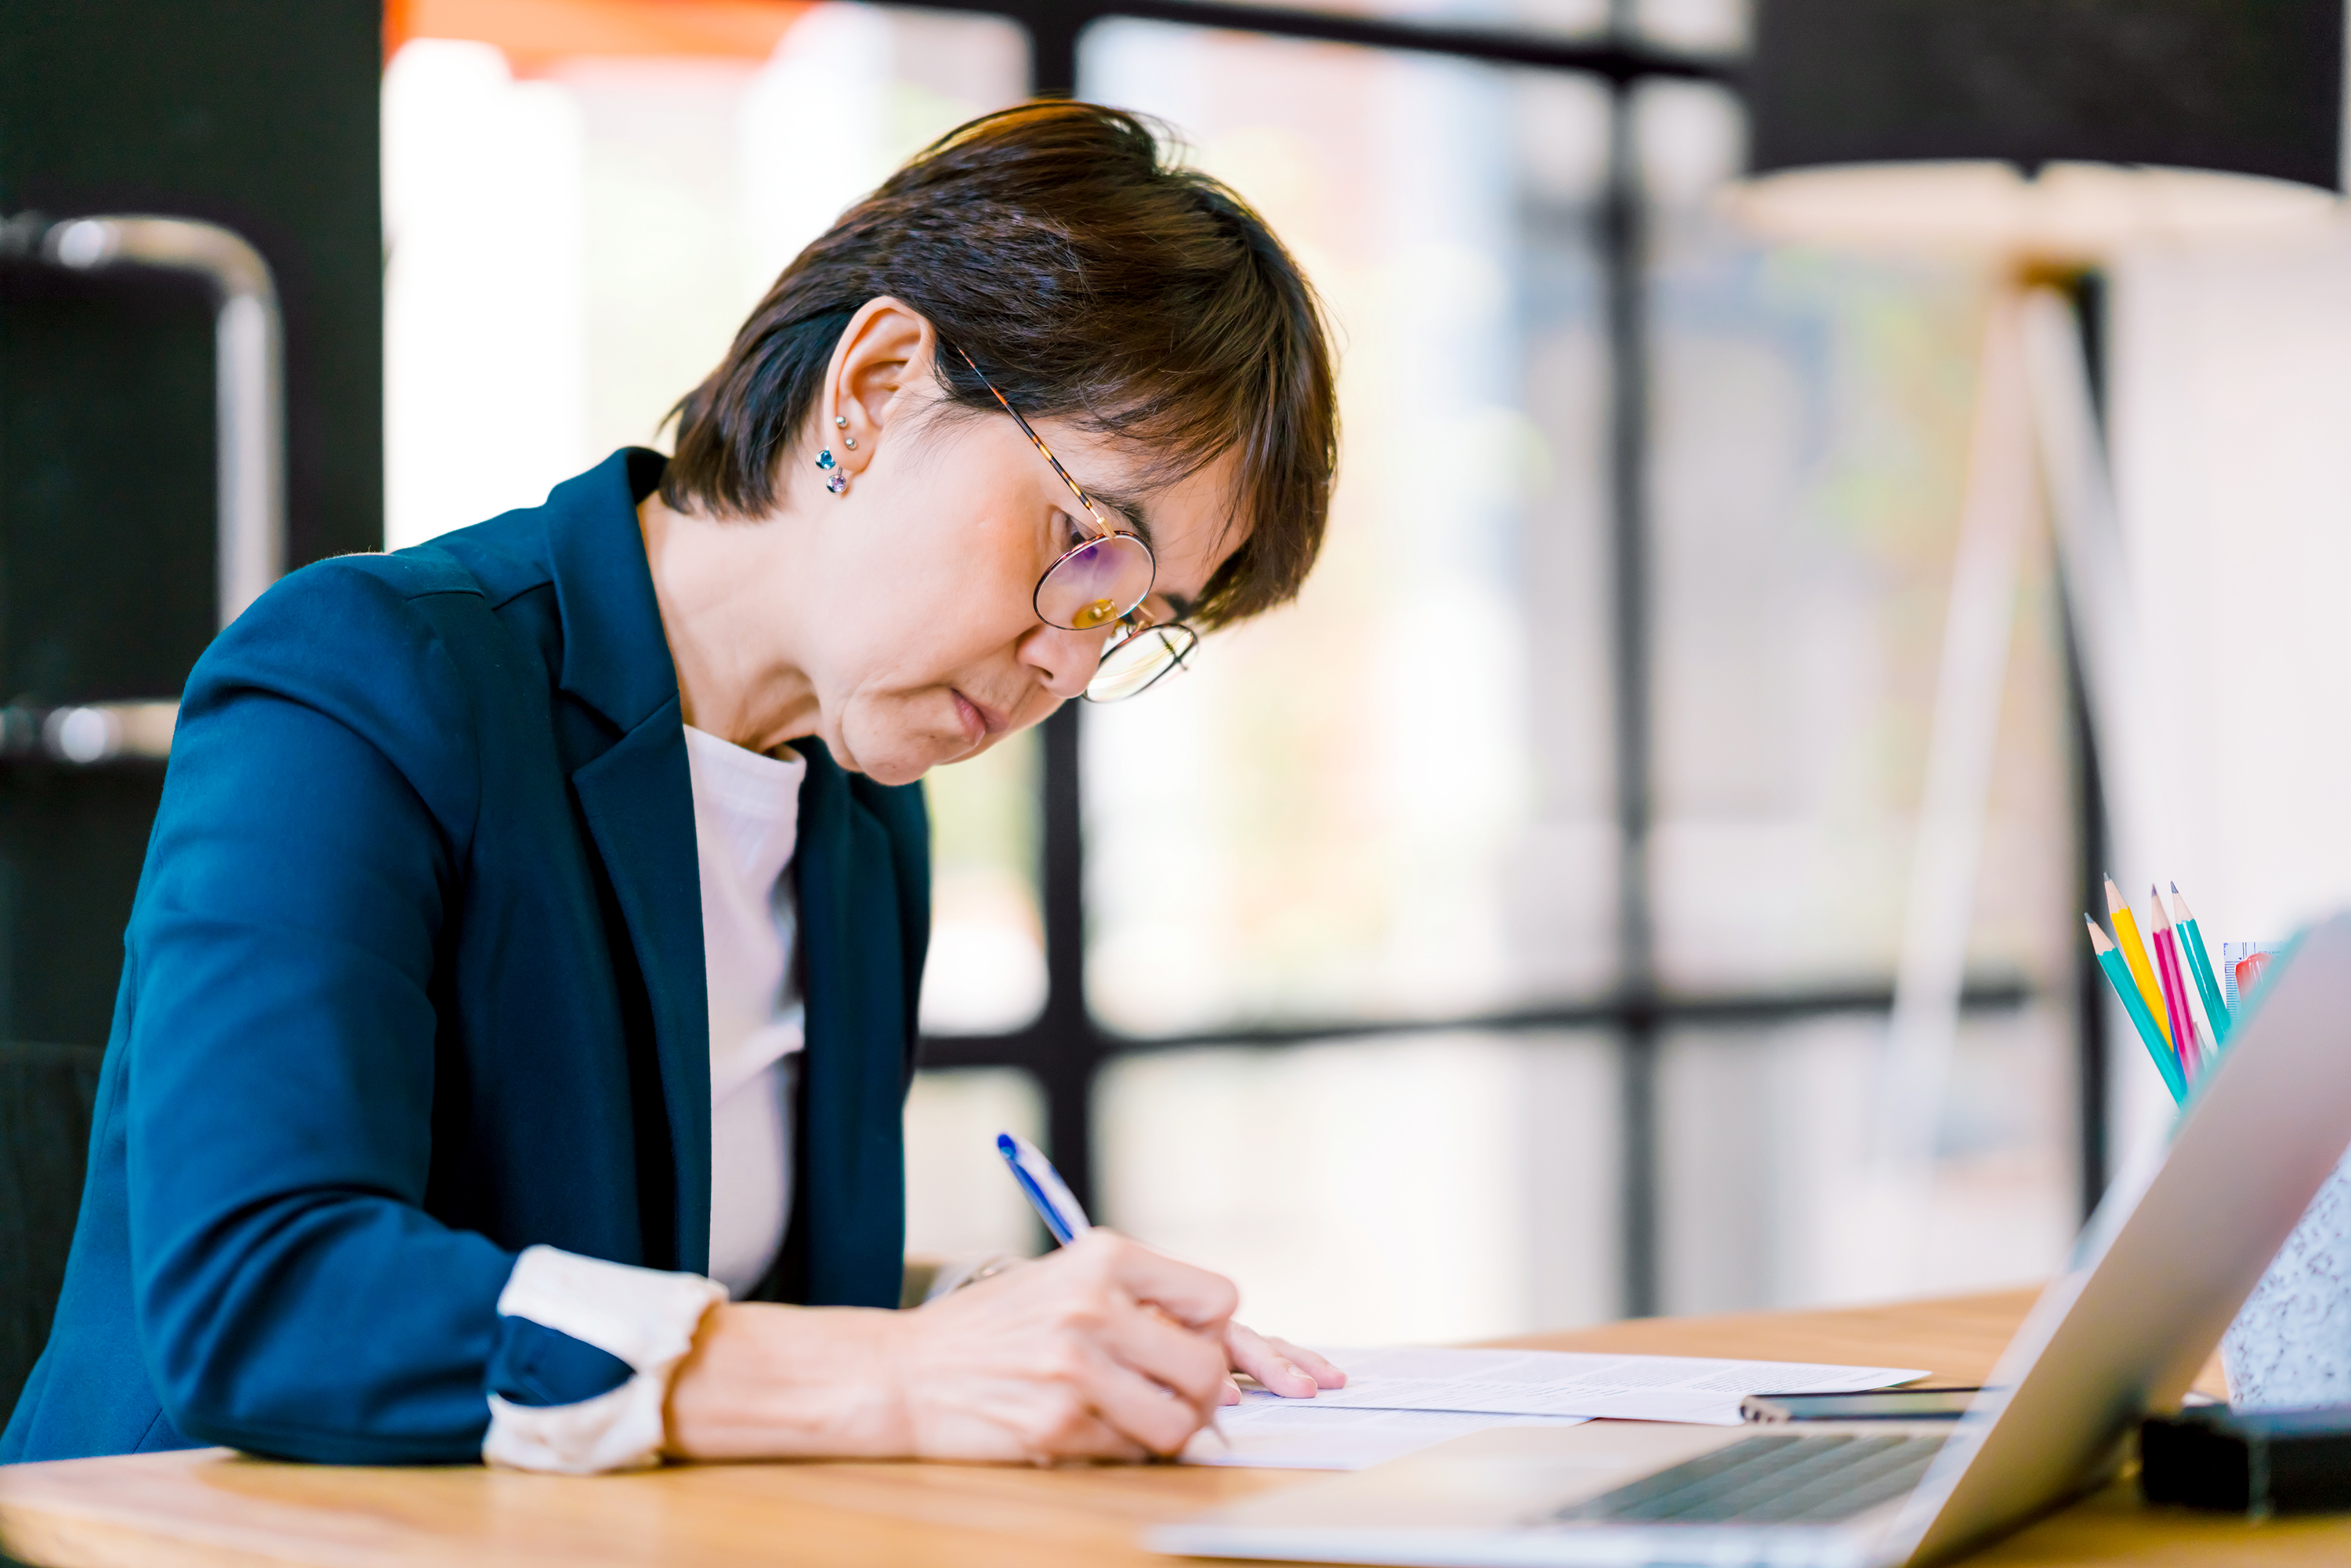 woman in suit at desk writing